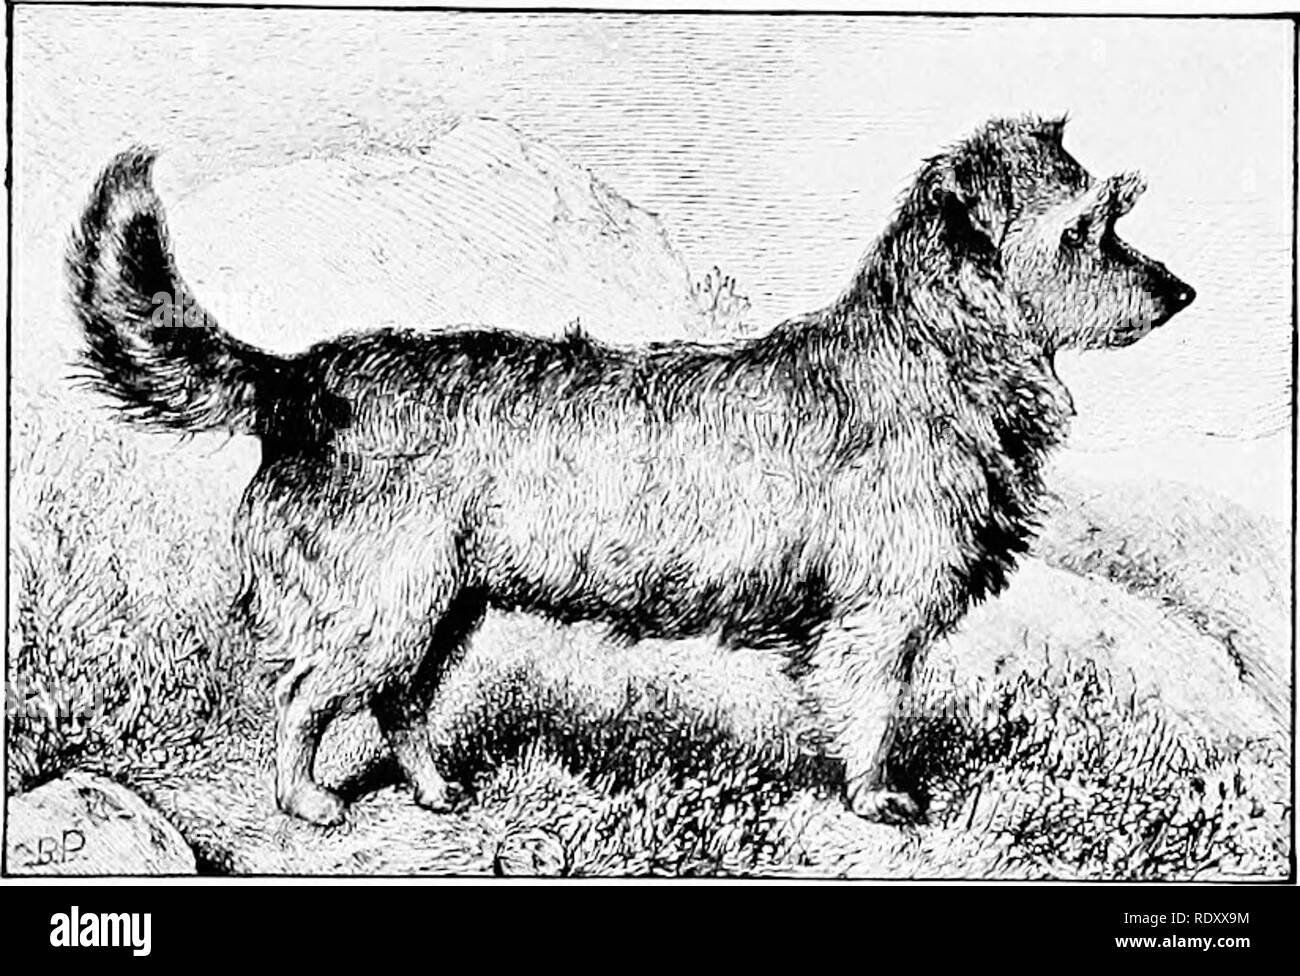 """. The new book of the dog; a comprehensive natural history of British dogs and their foreign relatives, with chapters on law, breeding, kennel management, and veterinary treatment. Dogs. 405 CHAPTER XLIII. THE SKYE TERRIER. BY CAPTAIX W. WILMER AXD R. LEIGHTON. ' From the dim shieling on the misty island, Mountains divide us and a world of seas ; Yet still our hearts are true, our hearts are Highland, And we in dreams behold the Hebrides."""" MR. A. IVl. SHAW'S FLORA (1877). THAT the Skye Terrier should be called """" the Heavenly Breed """" is a tribute to the favour in which he is held Stock Photo"""